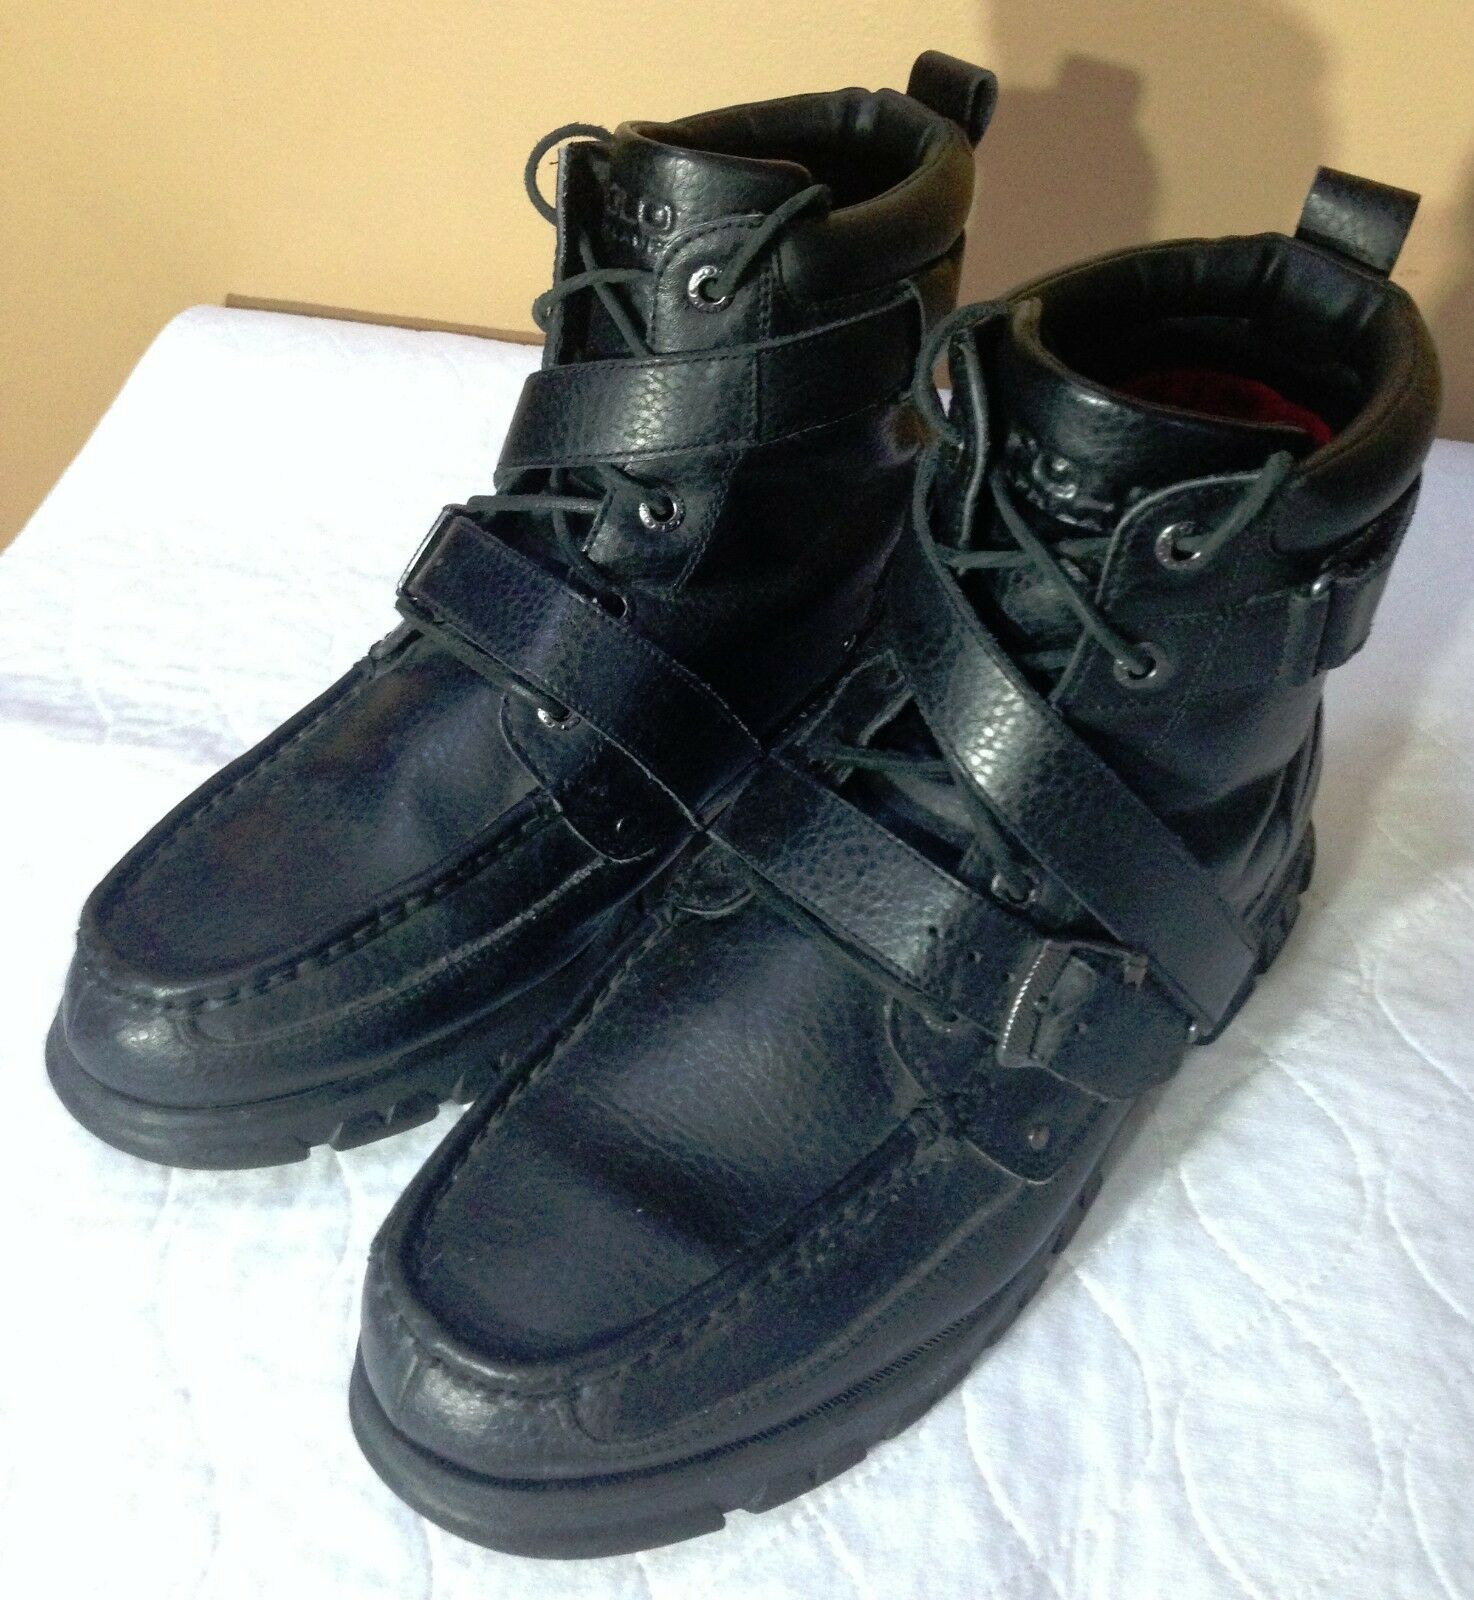 POLO Ralph Lauren Black Leather Boots Zig Zag II Buckle Lace Up size 13D